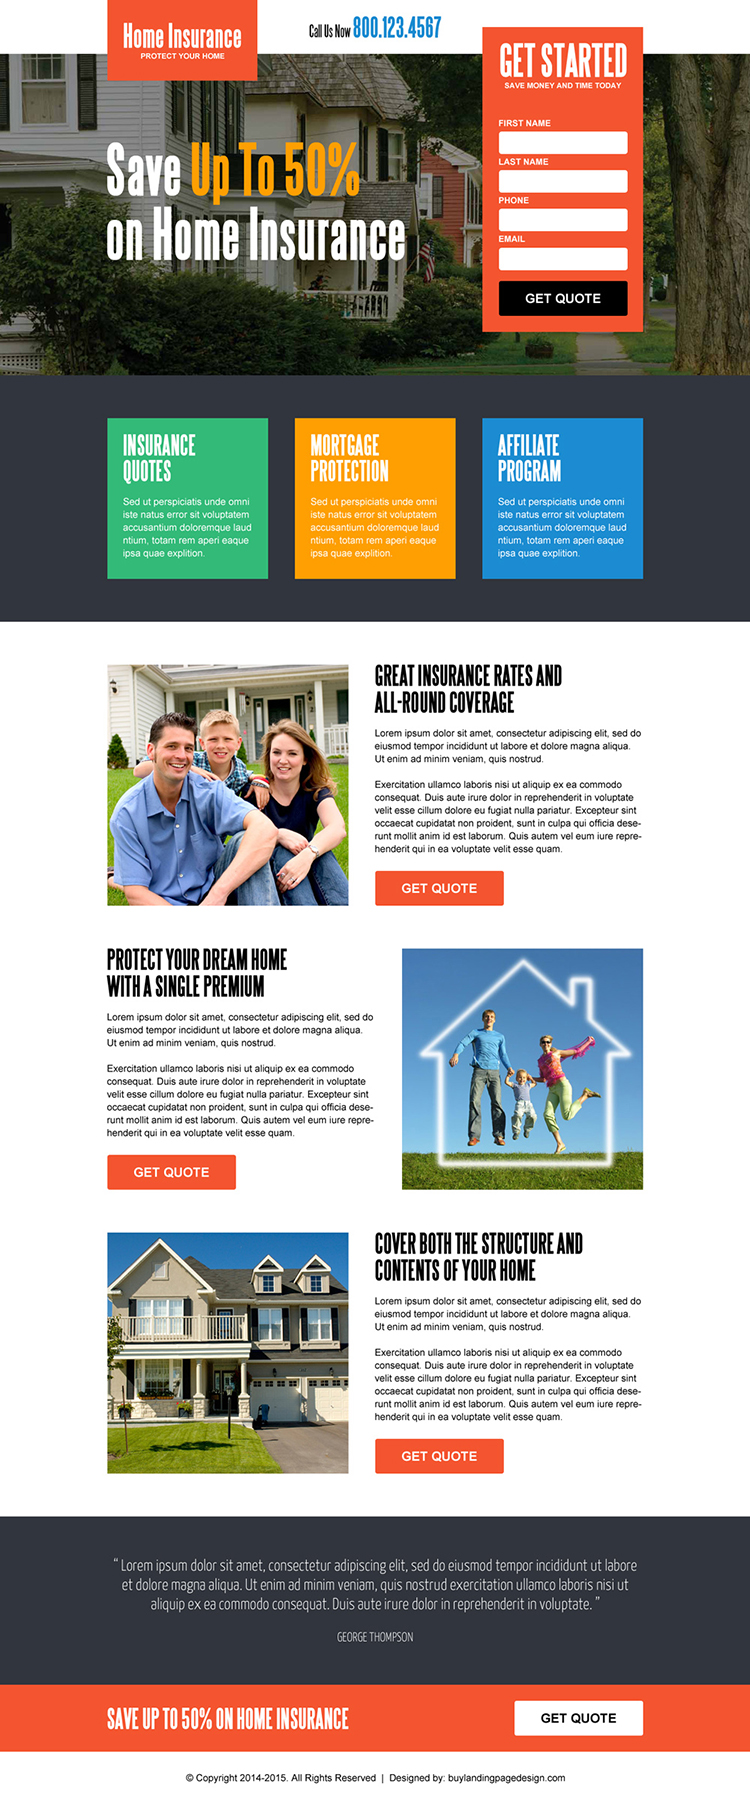 save money on home insurance lead generating squeeze page design